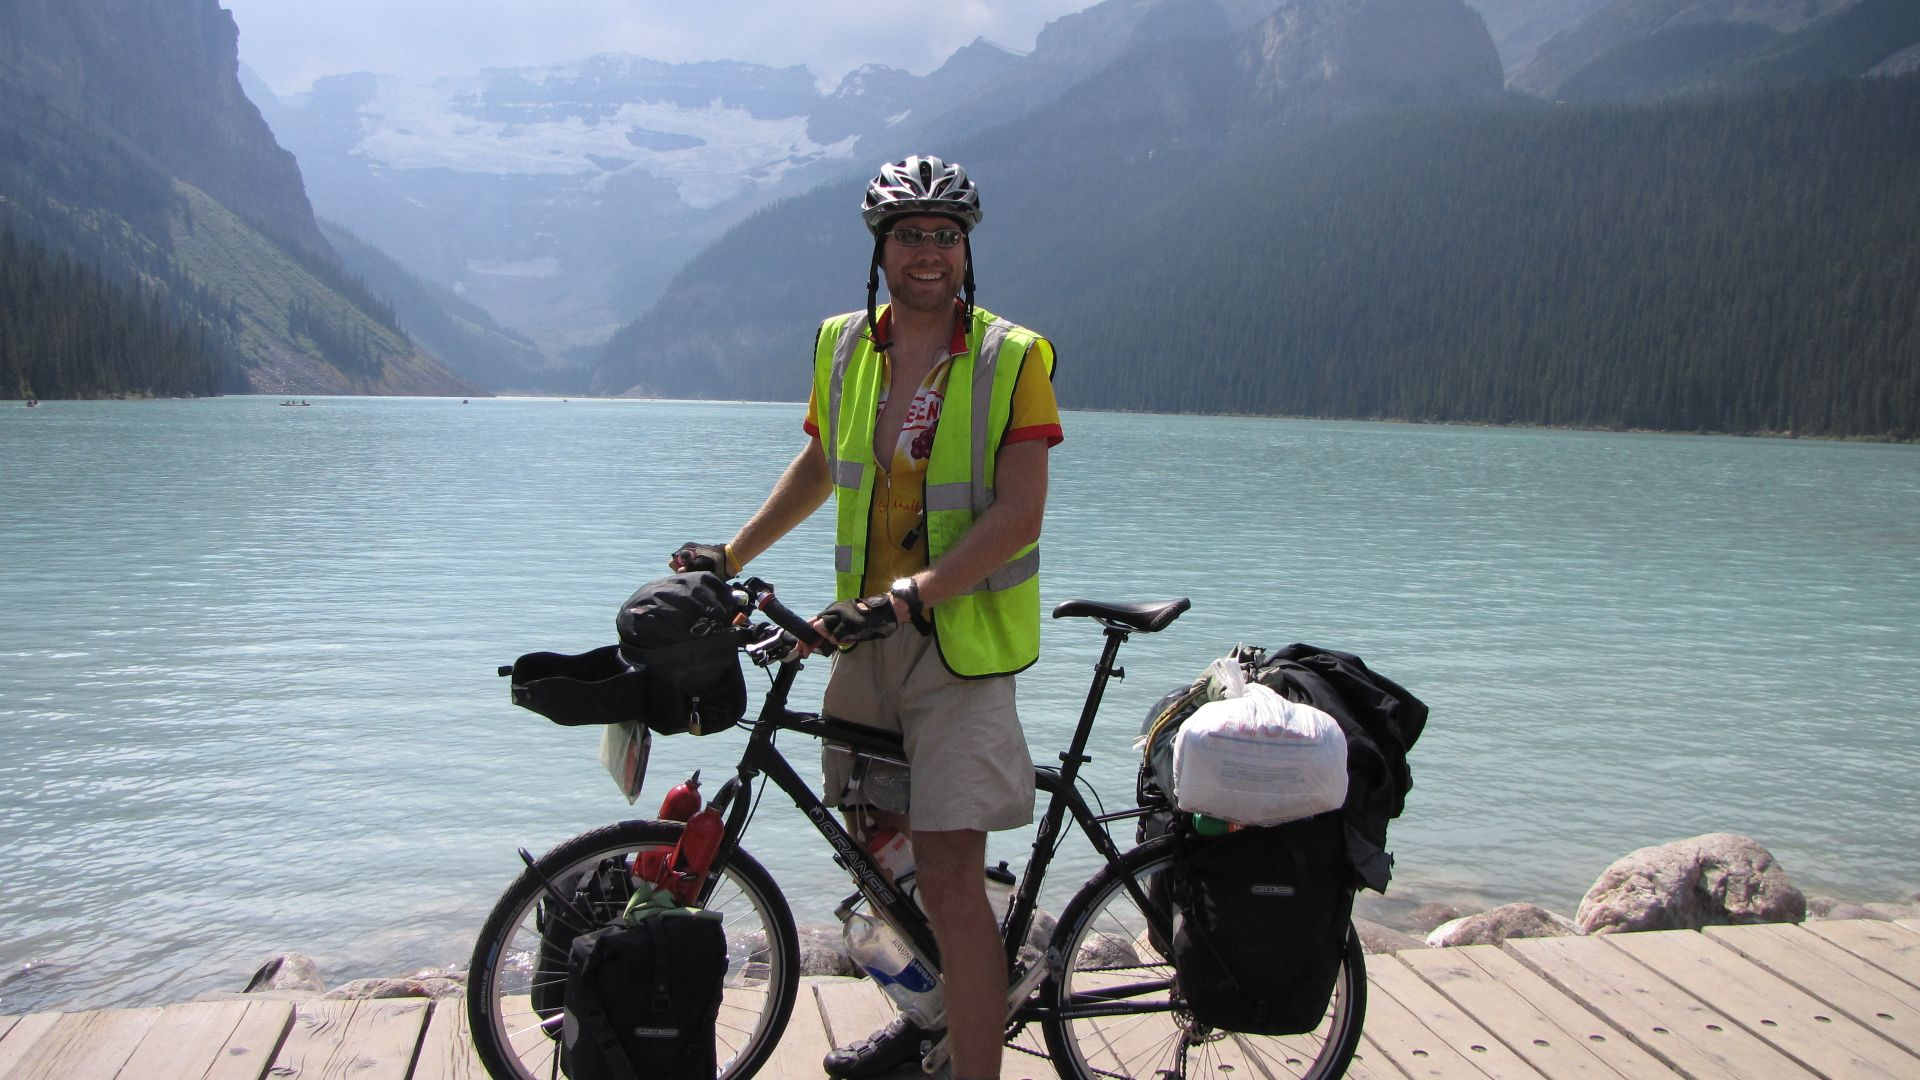 Lake Louise, Banff Nat Pk, Alberta, Canada - Now Jon, given the option of riding into the cul-de-sac that is Lake Louise would you like to (a) leave all your bags in town & cycle unburdened by weight up 1 of the steepest, twistiest roads of the trip so far or (b) ignore all logic, stay obsessively purist, keep all weight on the bike & ride...?  Ummmm...